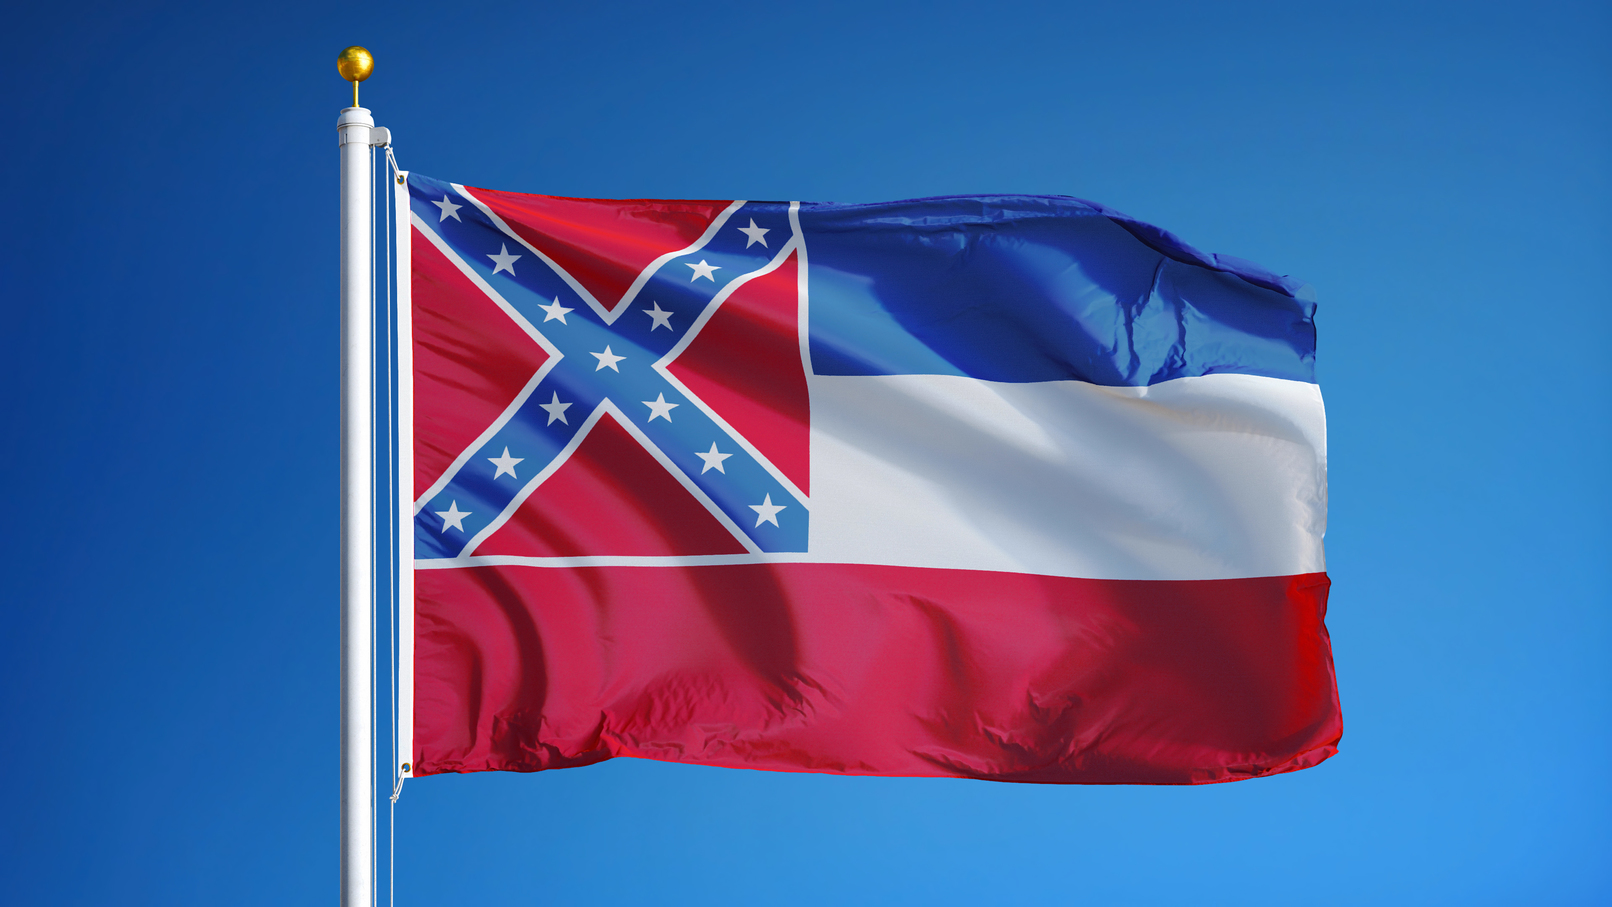 Town Residents File Federal Lawsuit to Ban the Mississippi State Flag in Ocean Springs, MS